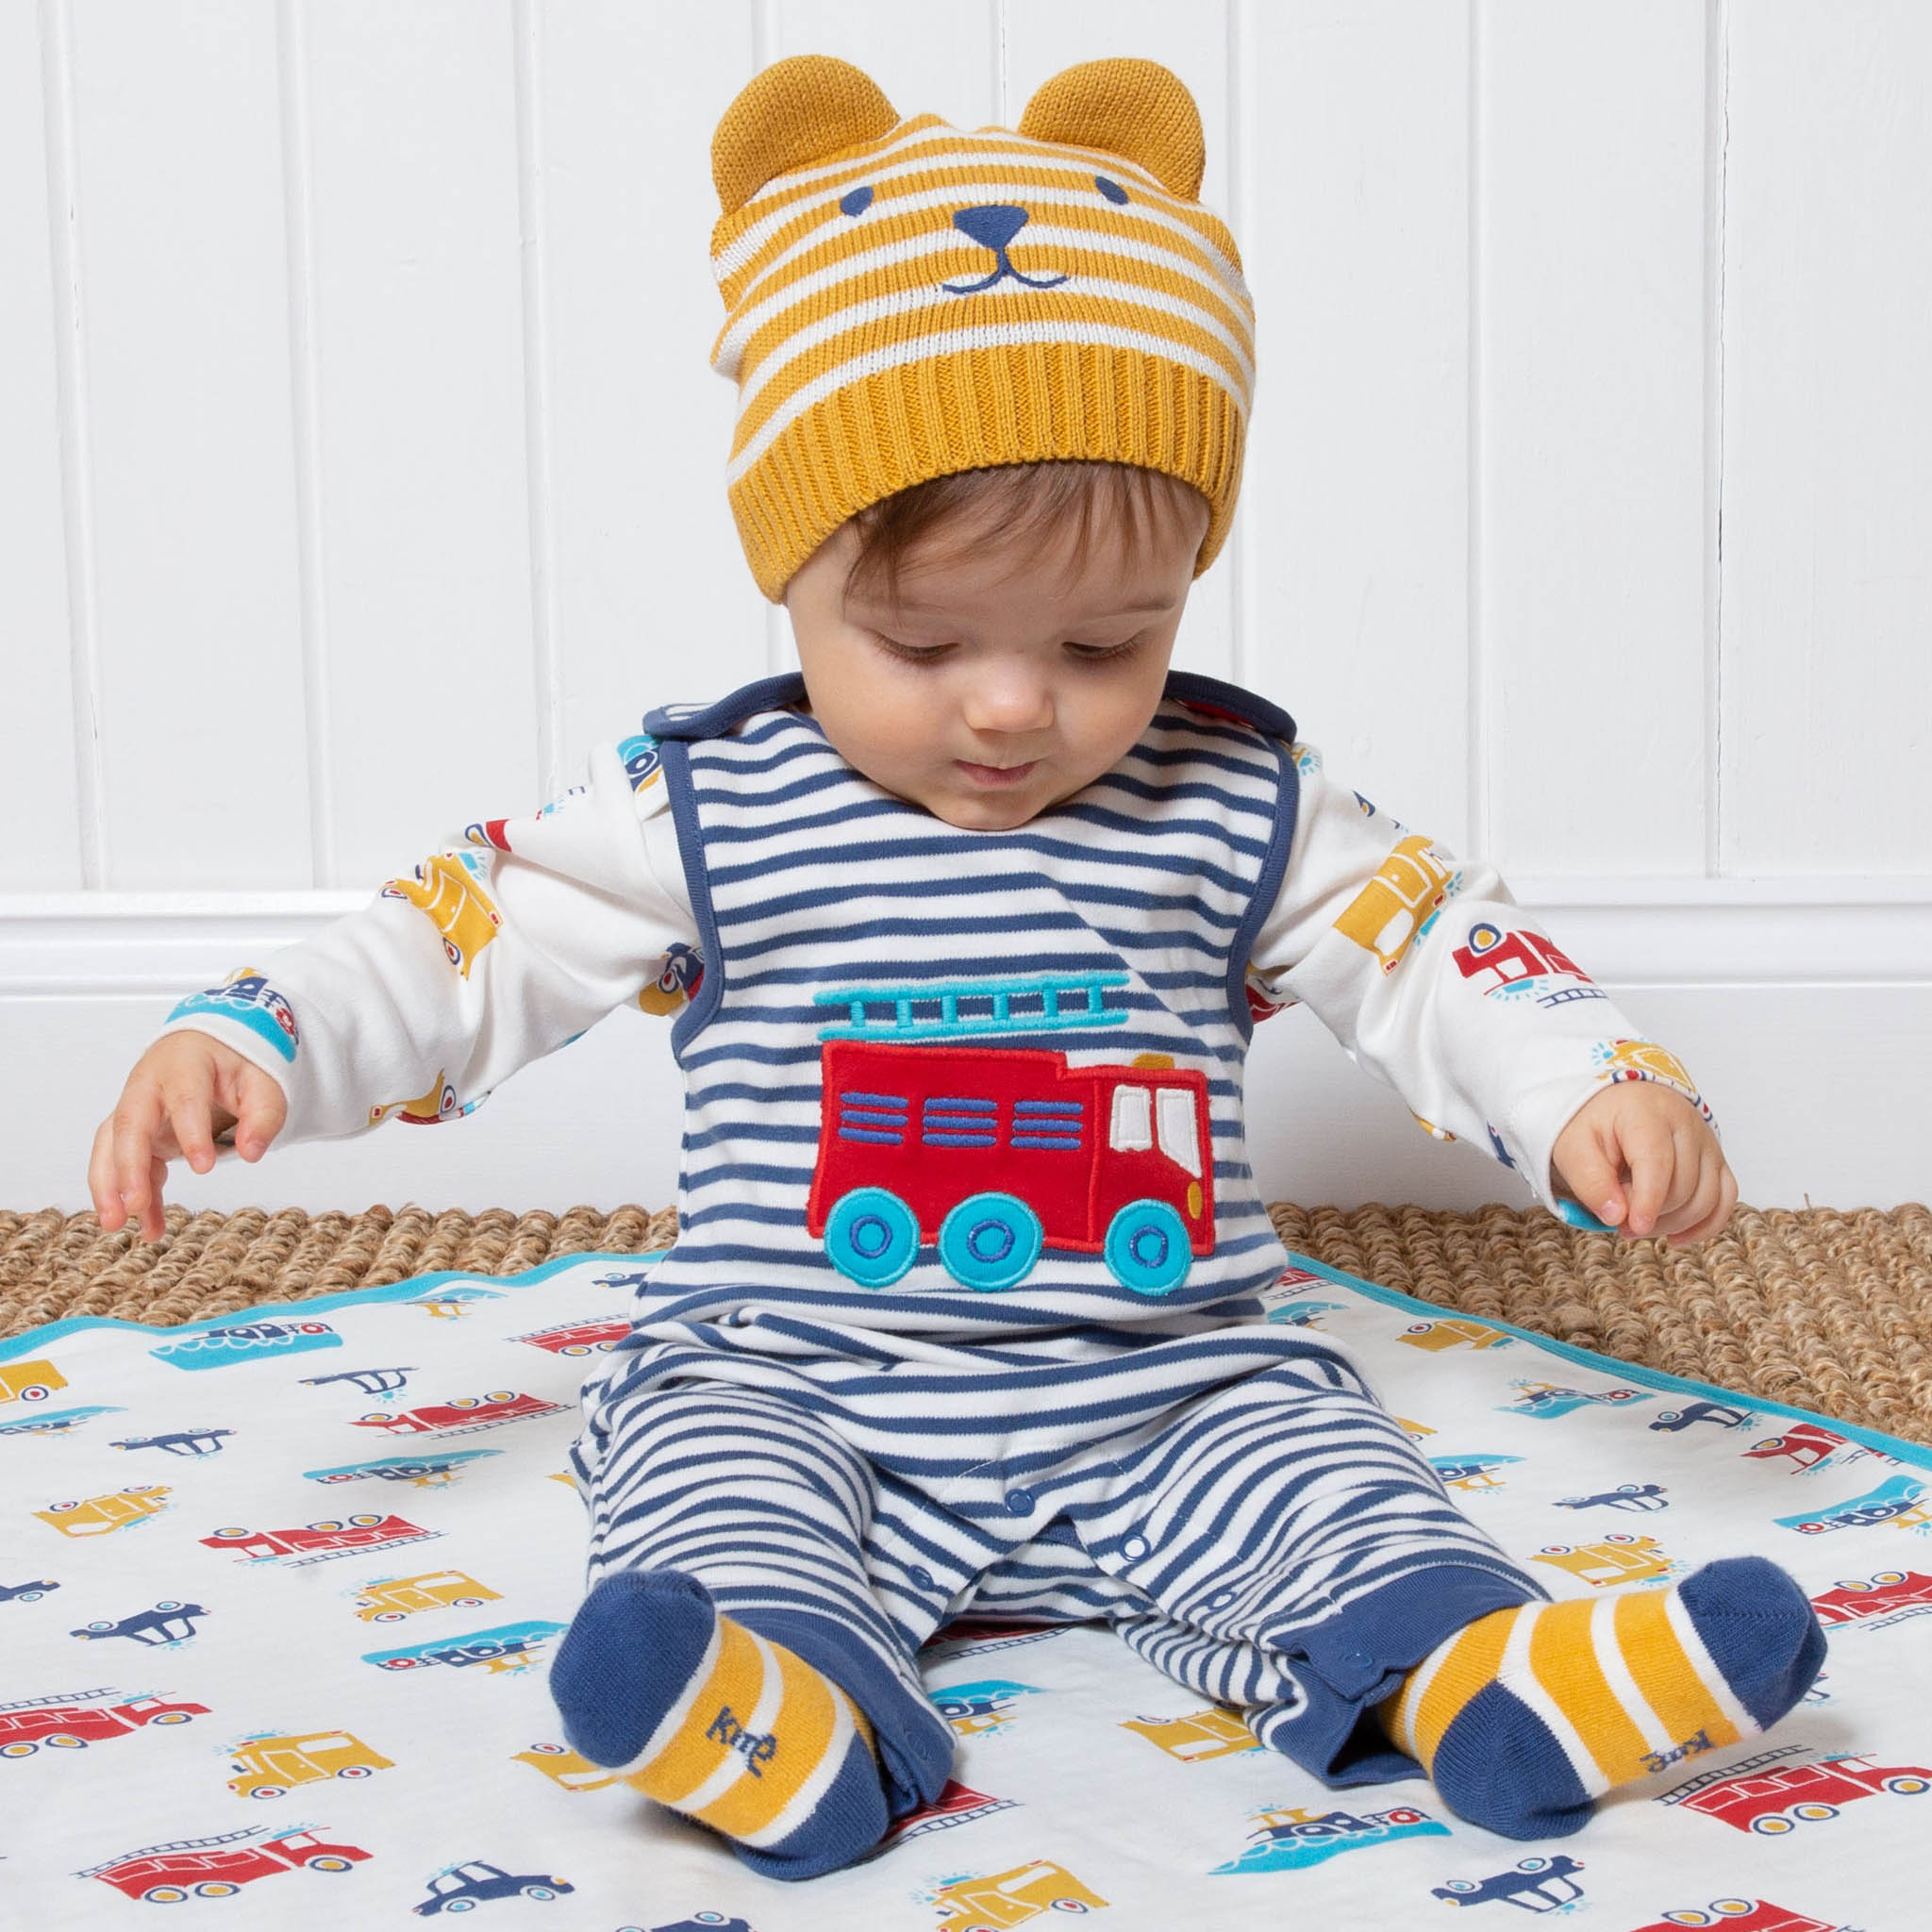 SALE £20.00 Kite Fire Engine Rescue Dungarees-Navy & Cream (was £25.00)